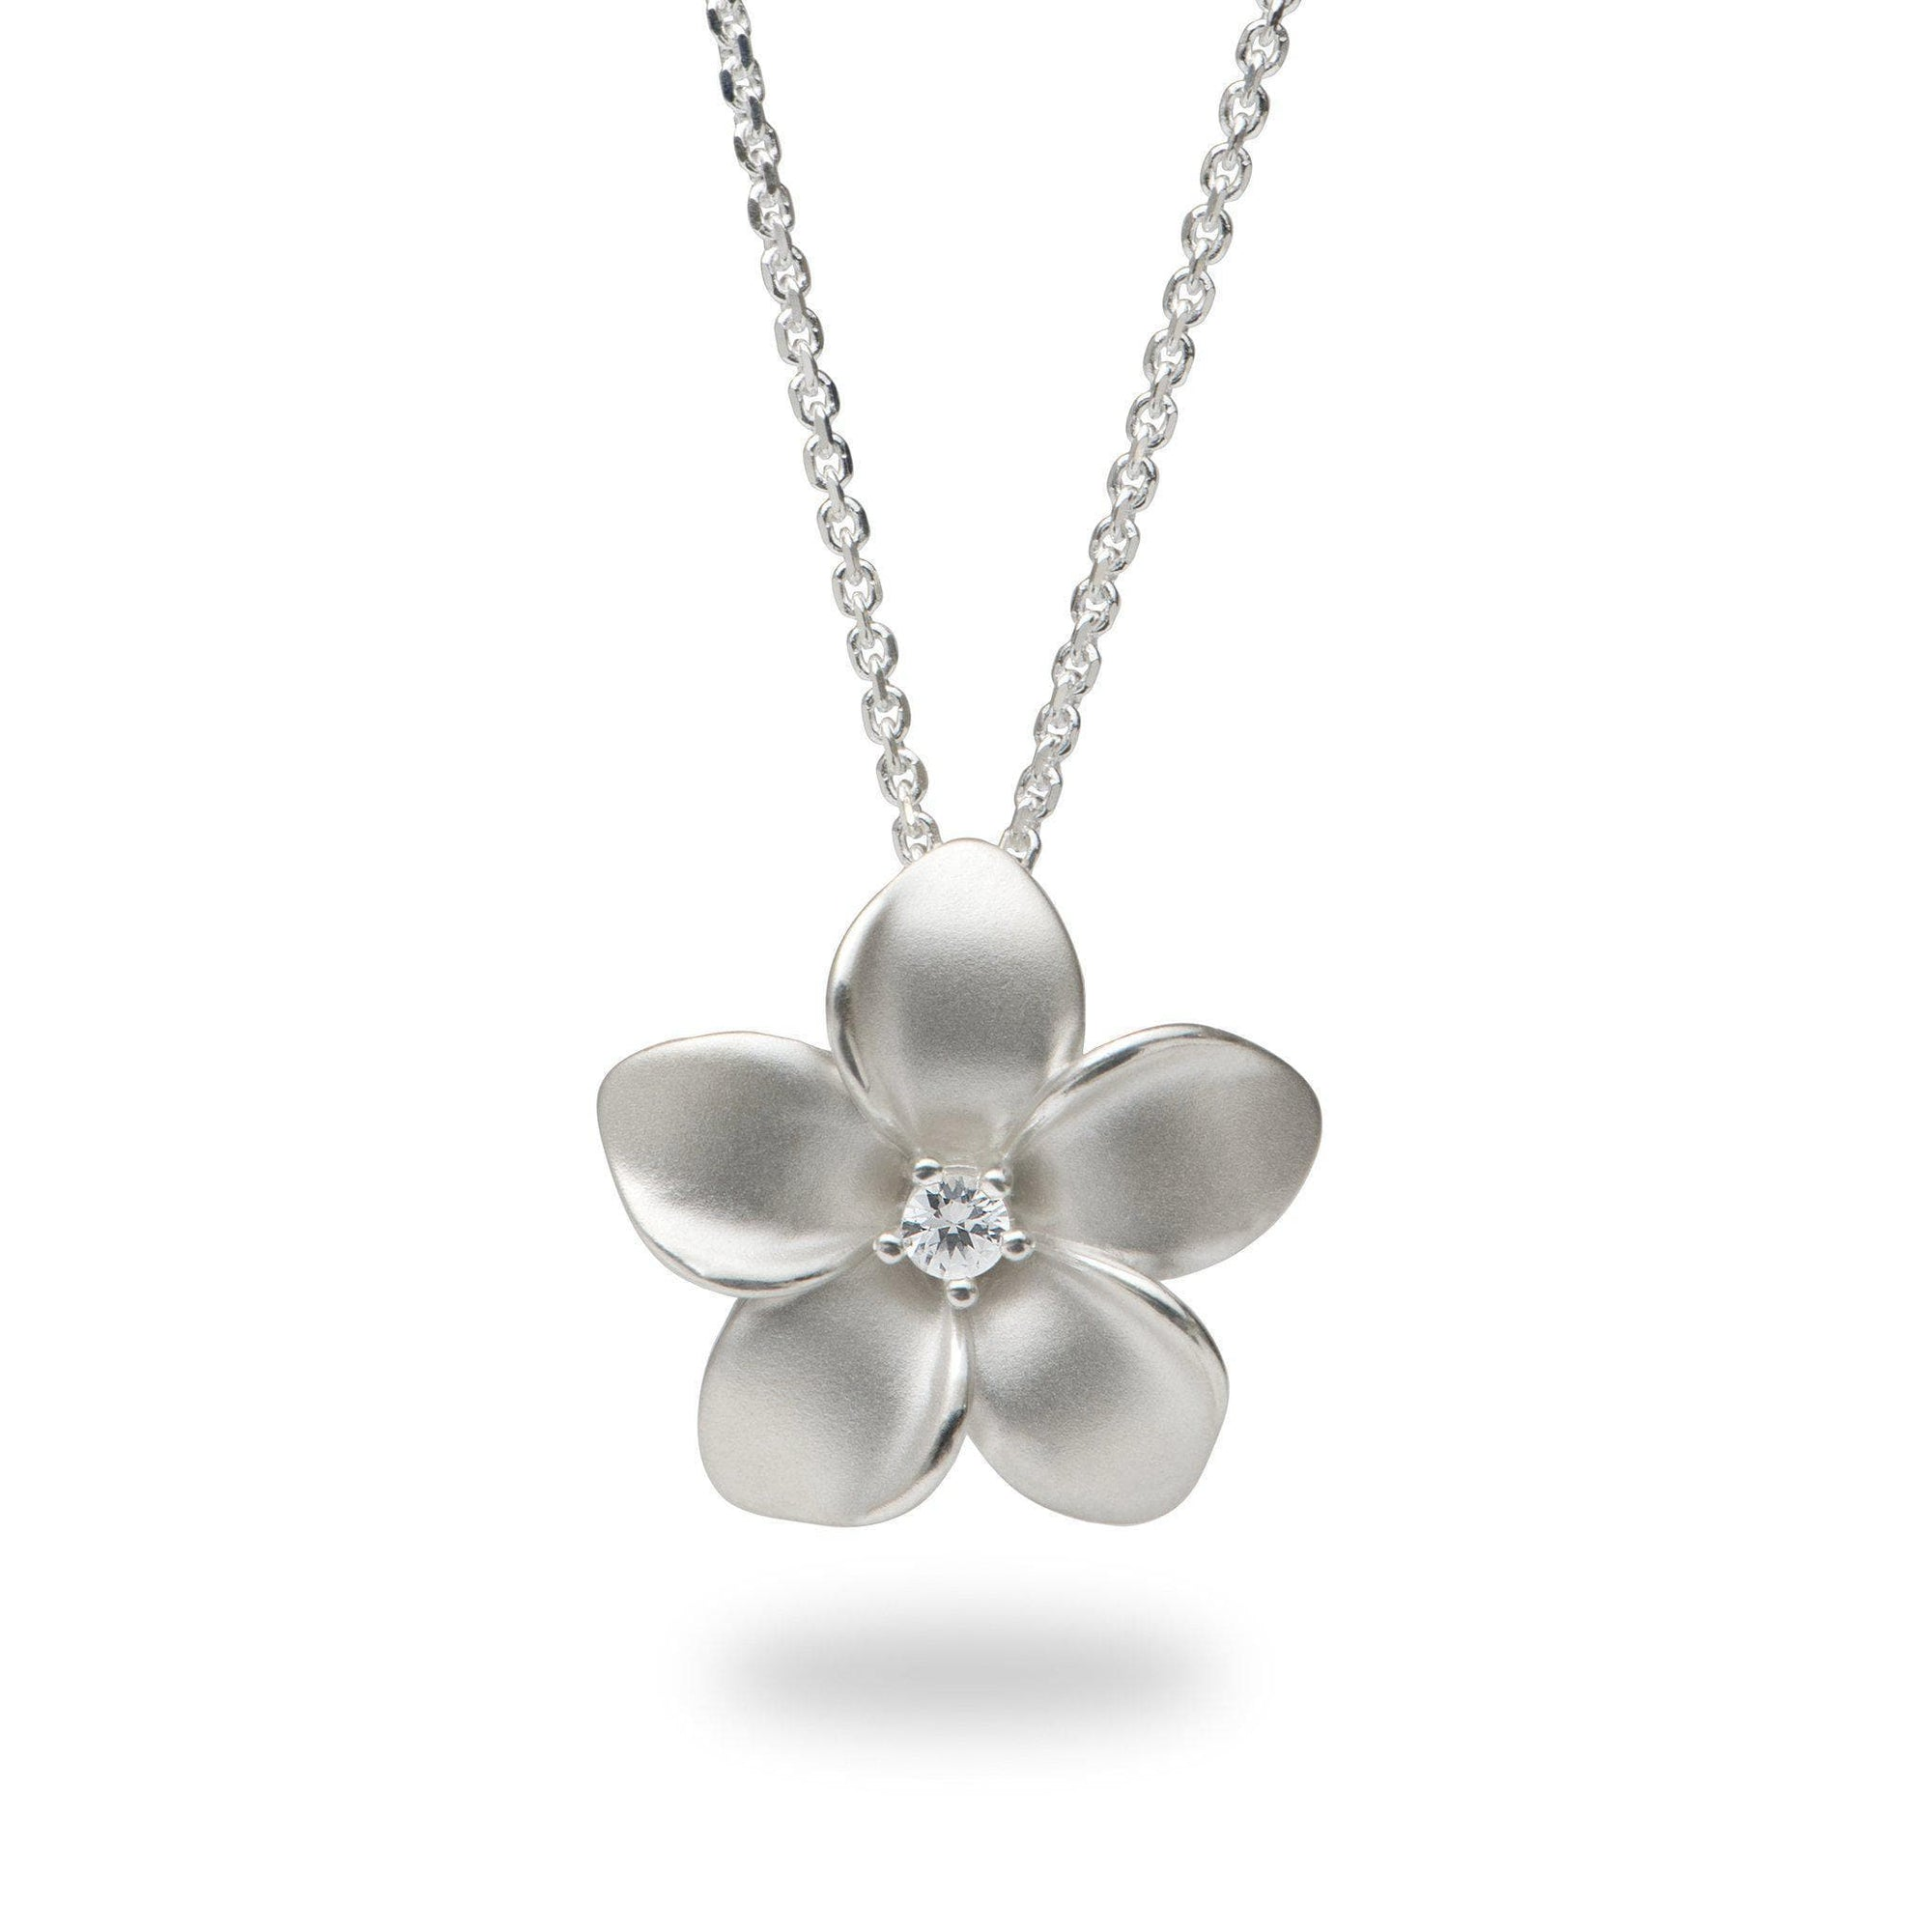 Plumeria Necklace in Sterling Silver with White Sapphire - Maui Divers Jewelry